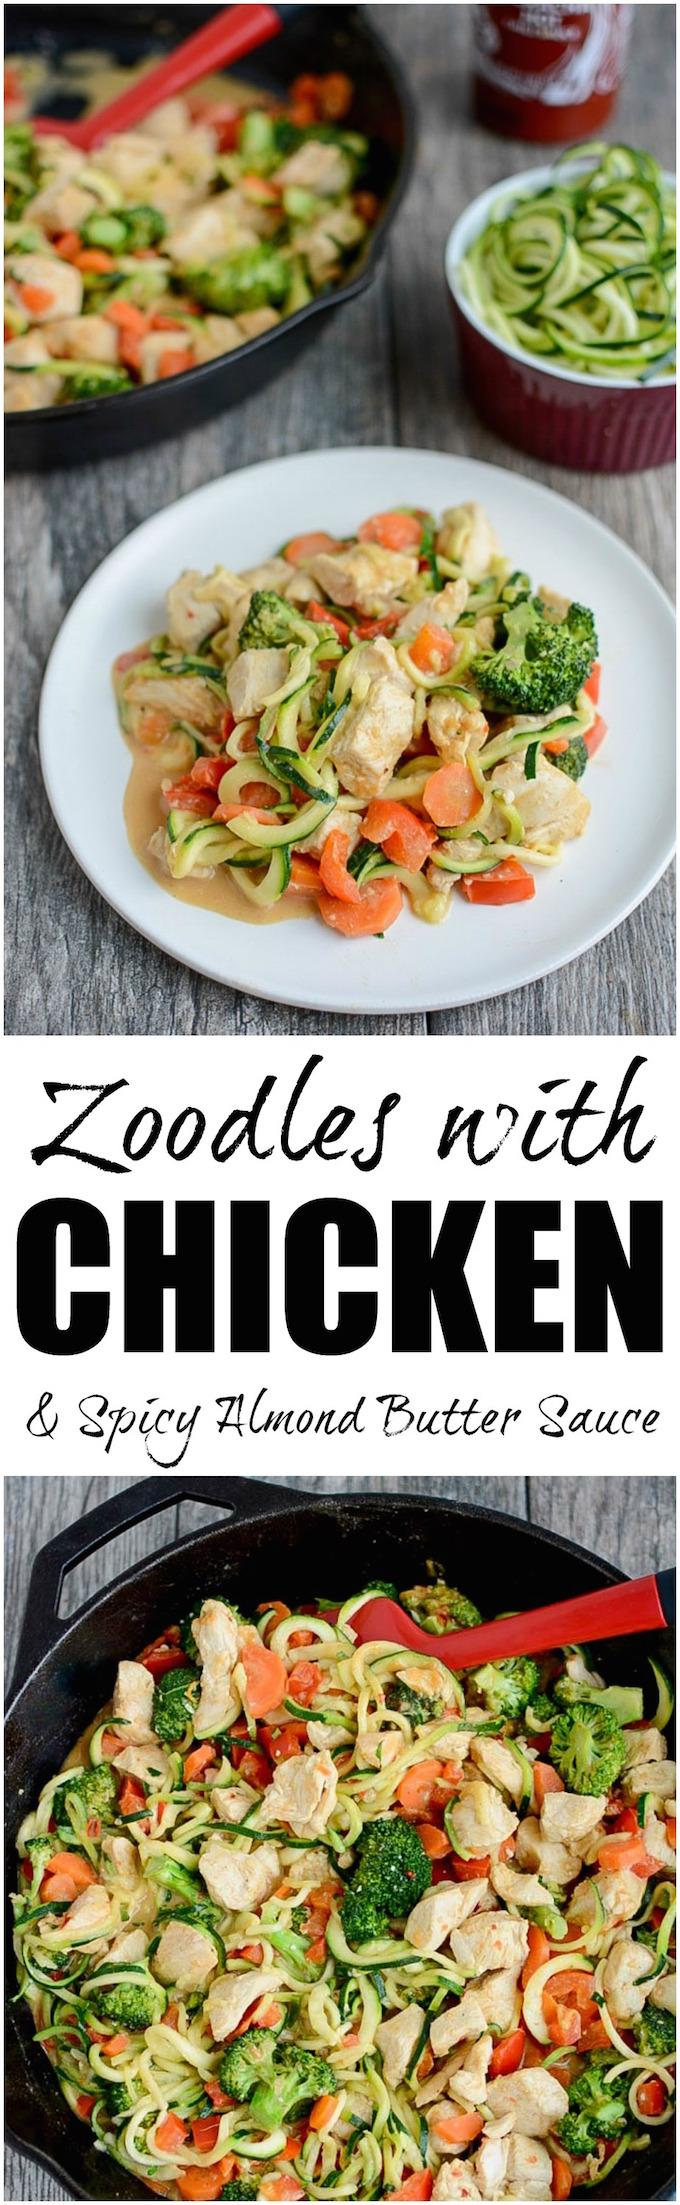 This recipe for Zoodles with Chicken and Spicy Almond Butter Sauce is low-carb, high in protein and makes veggies flavorful and fun to eat!